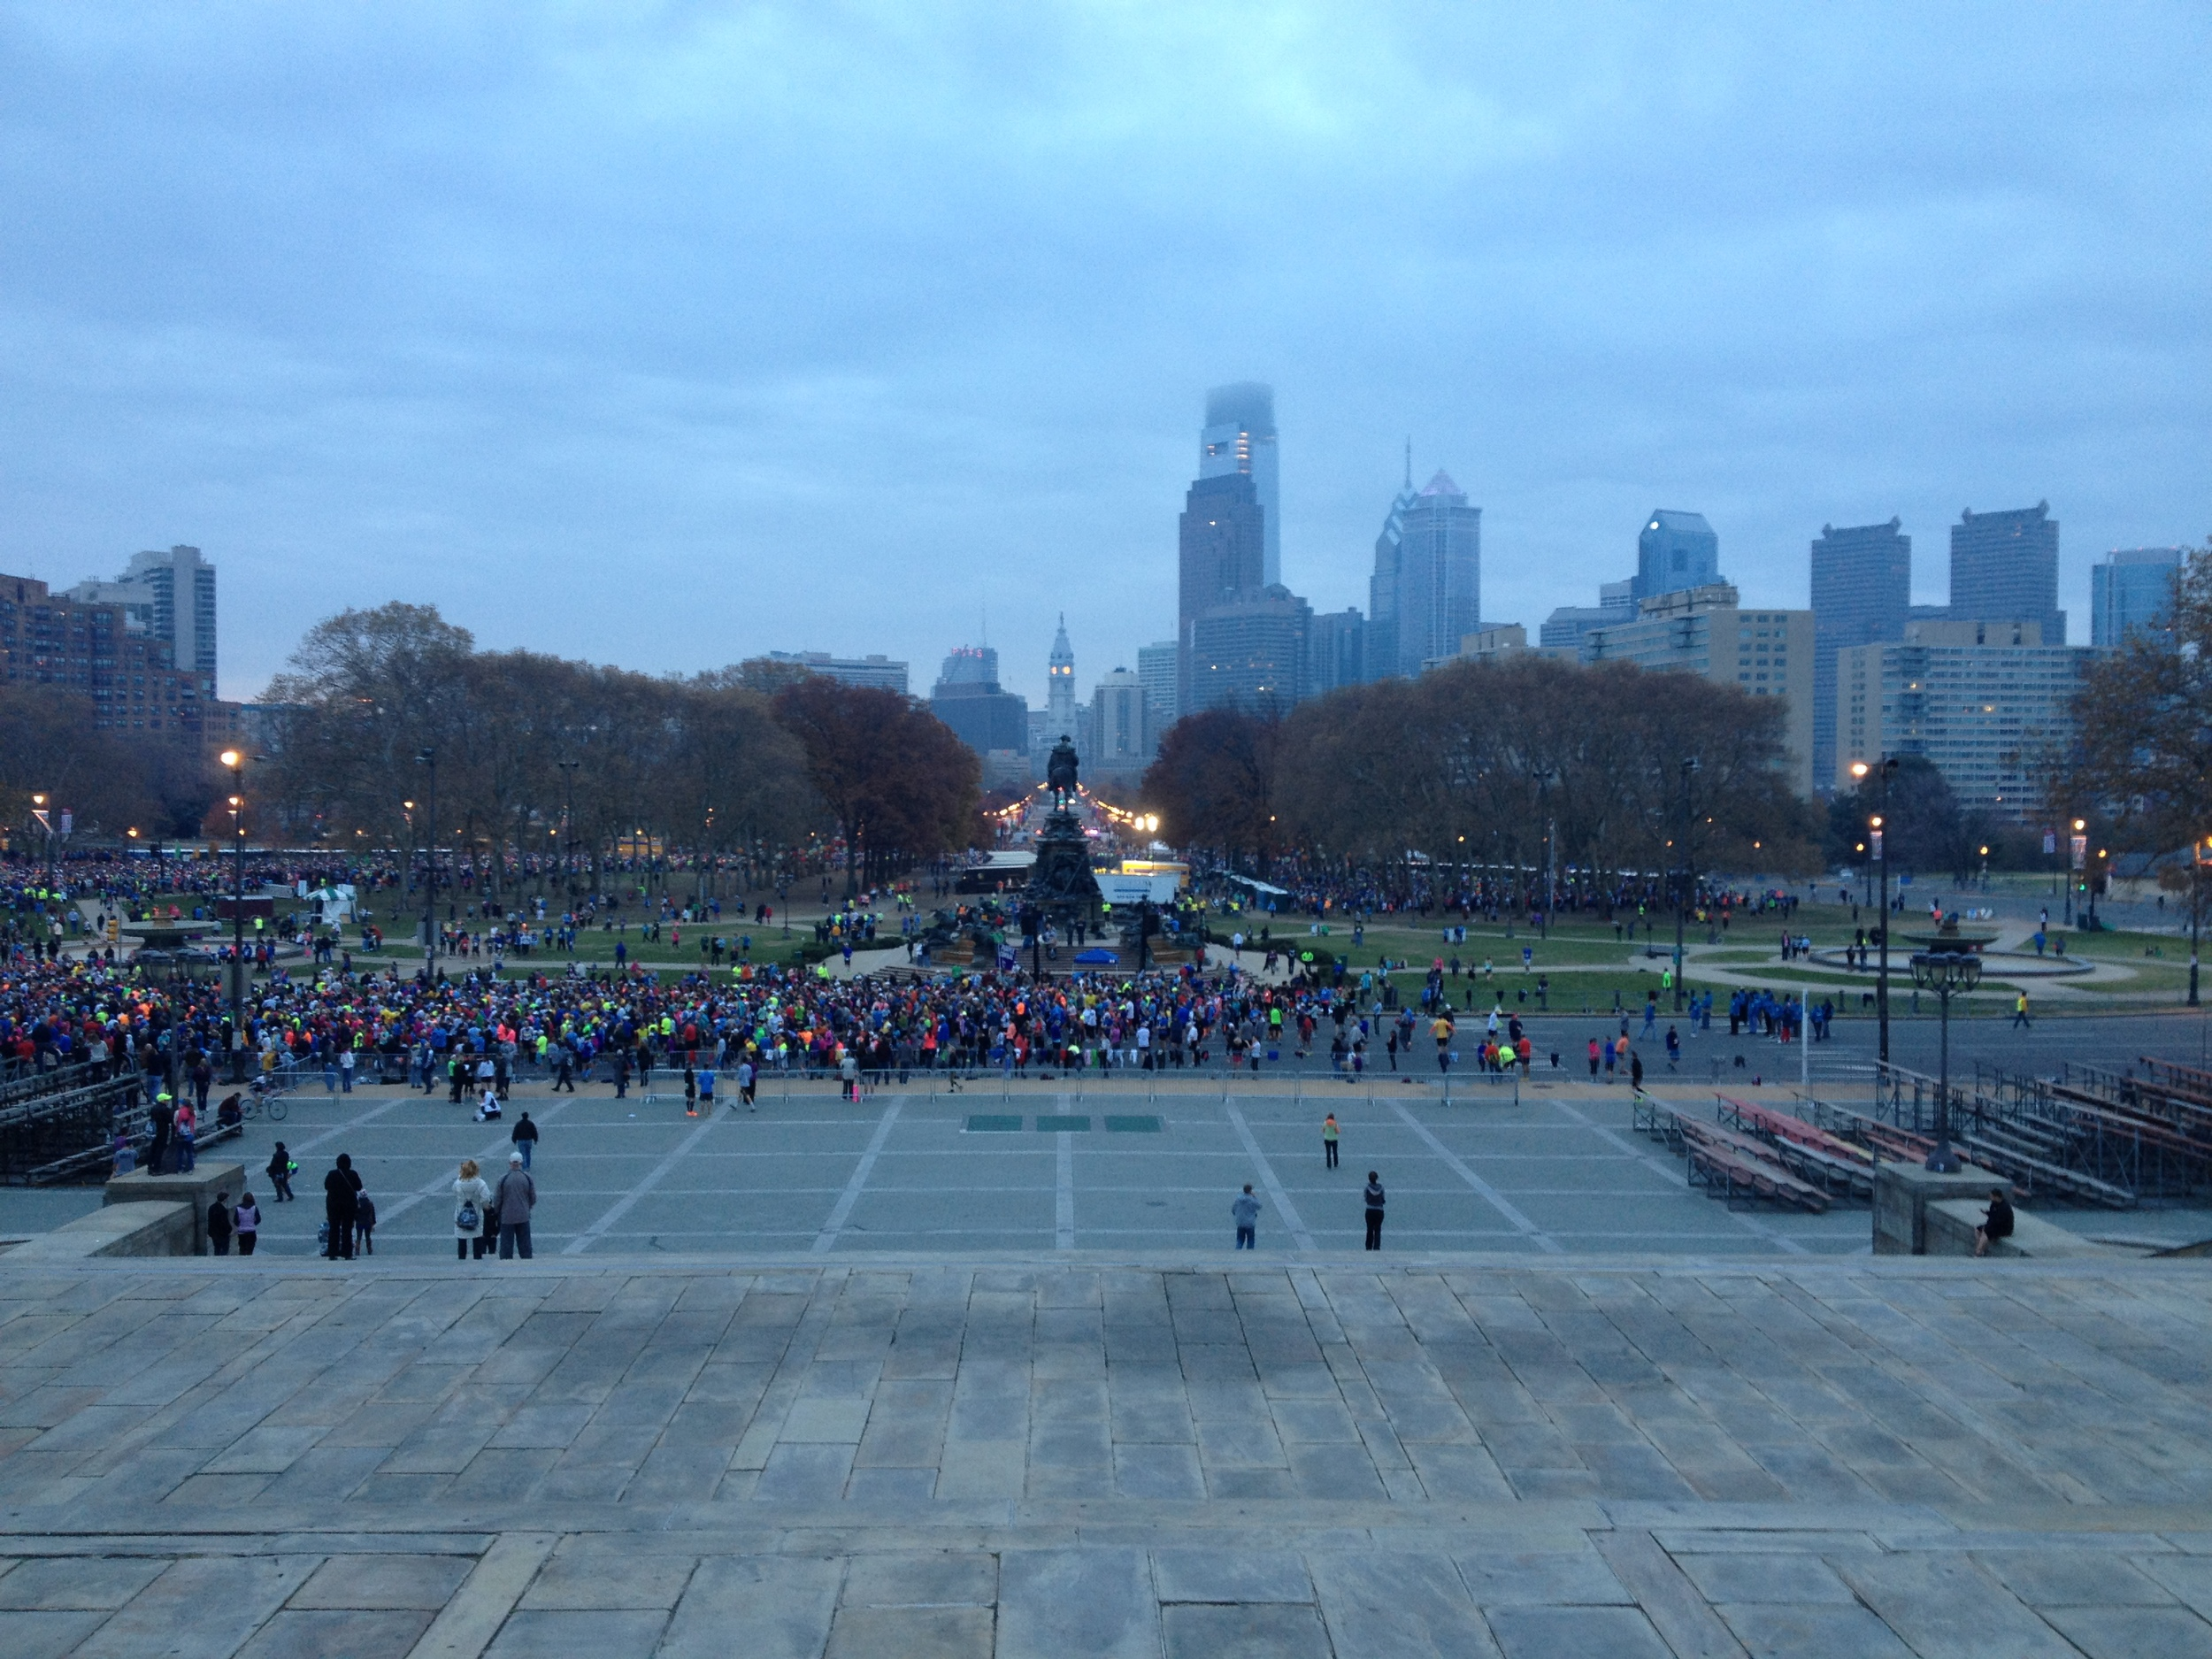 View from the Rocky Stairs. Alll those crazy people about to go running...